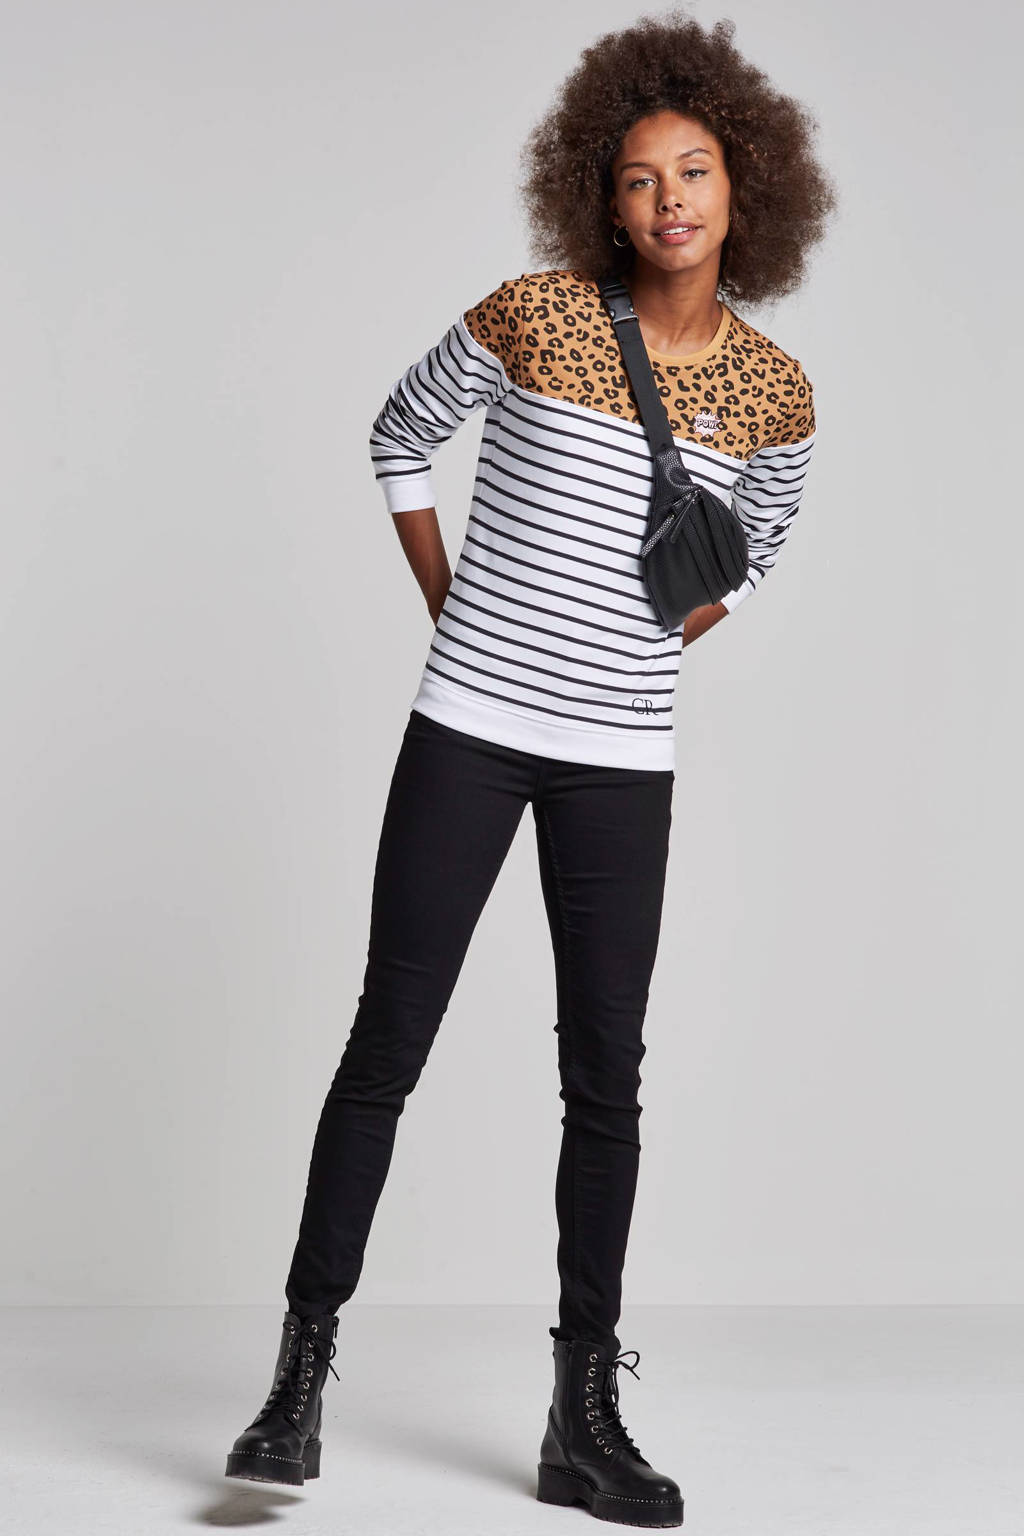 Colourful Rebel Striped Leopard sweater, Wit/bruin